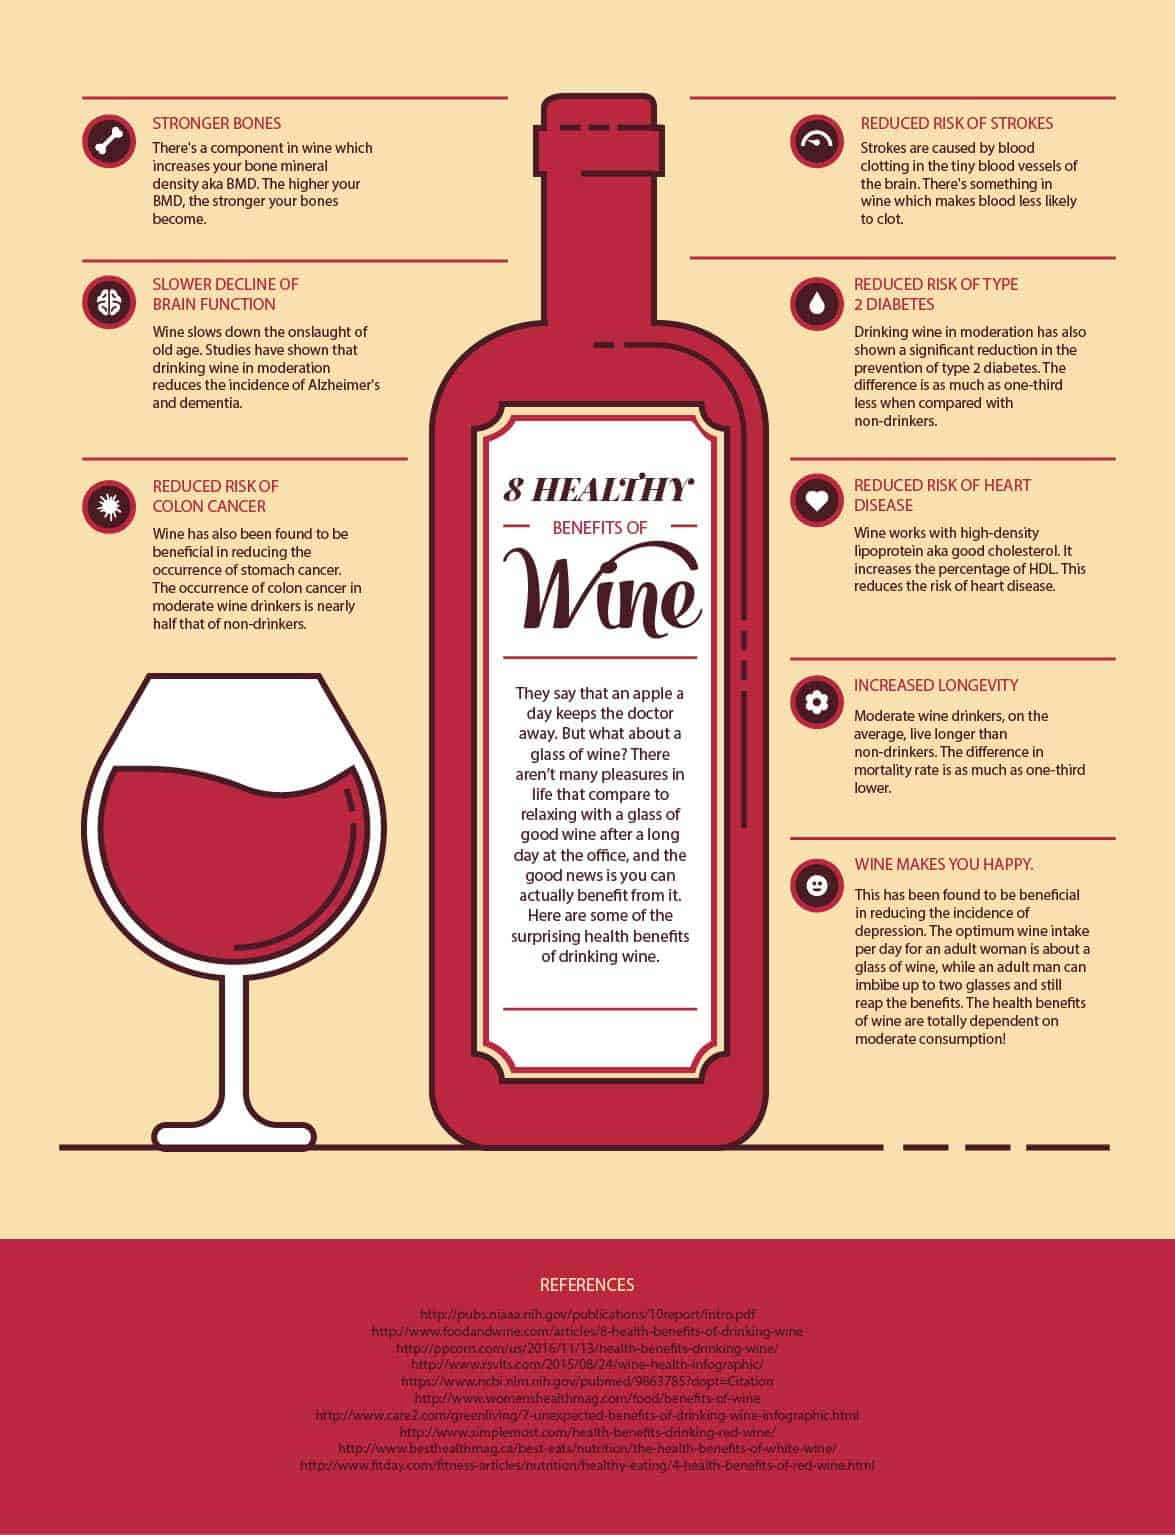 Glass Of Wine A Day The Benefits Of Drinking Wine New York Street Food